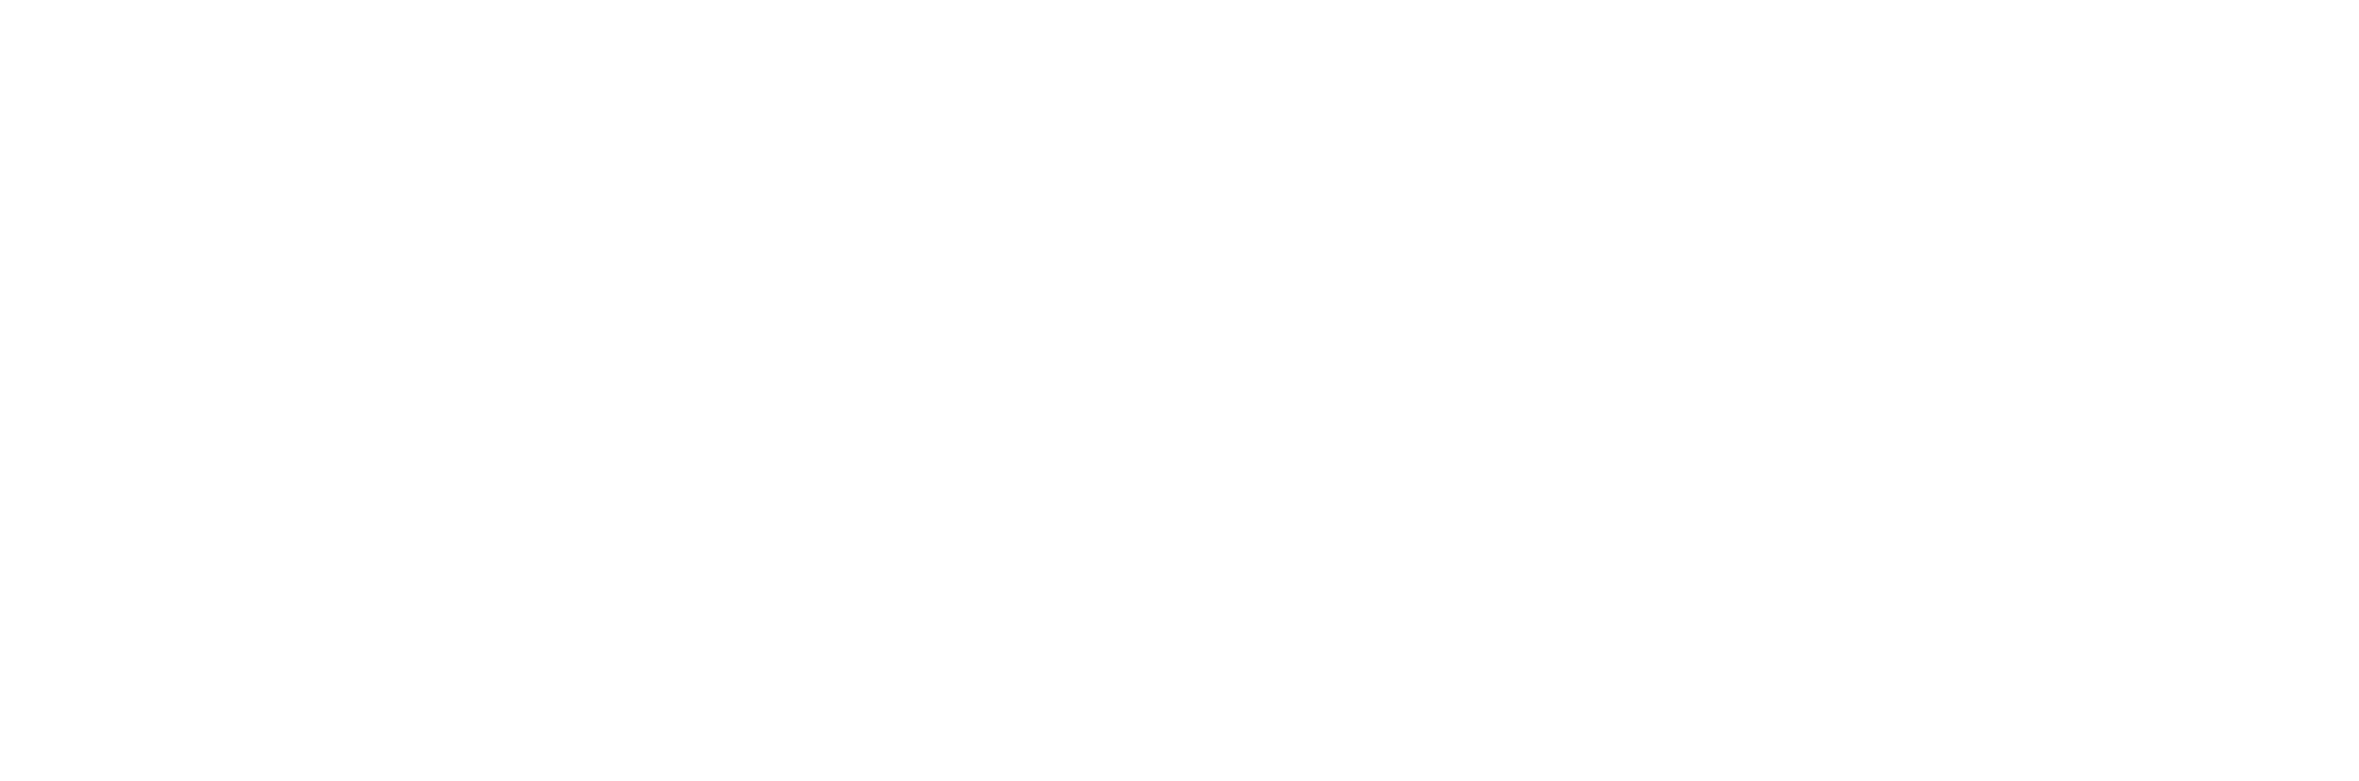 Demolition & Recycling International